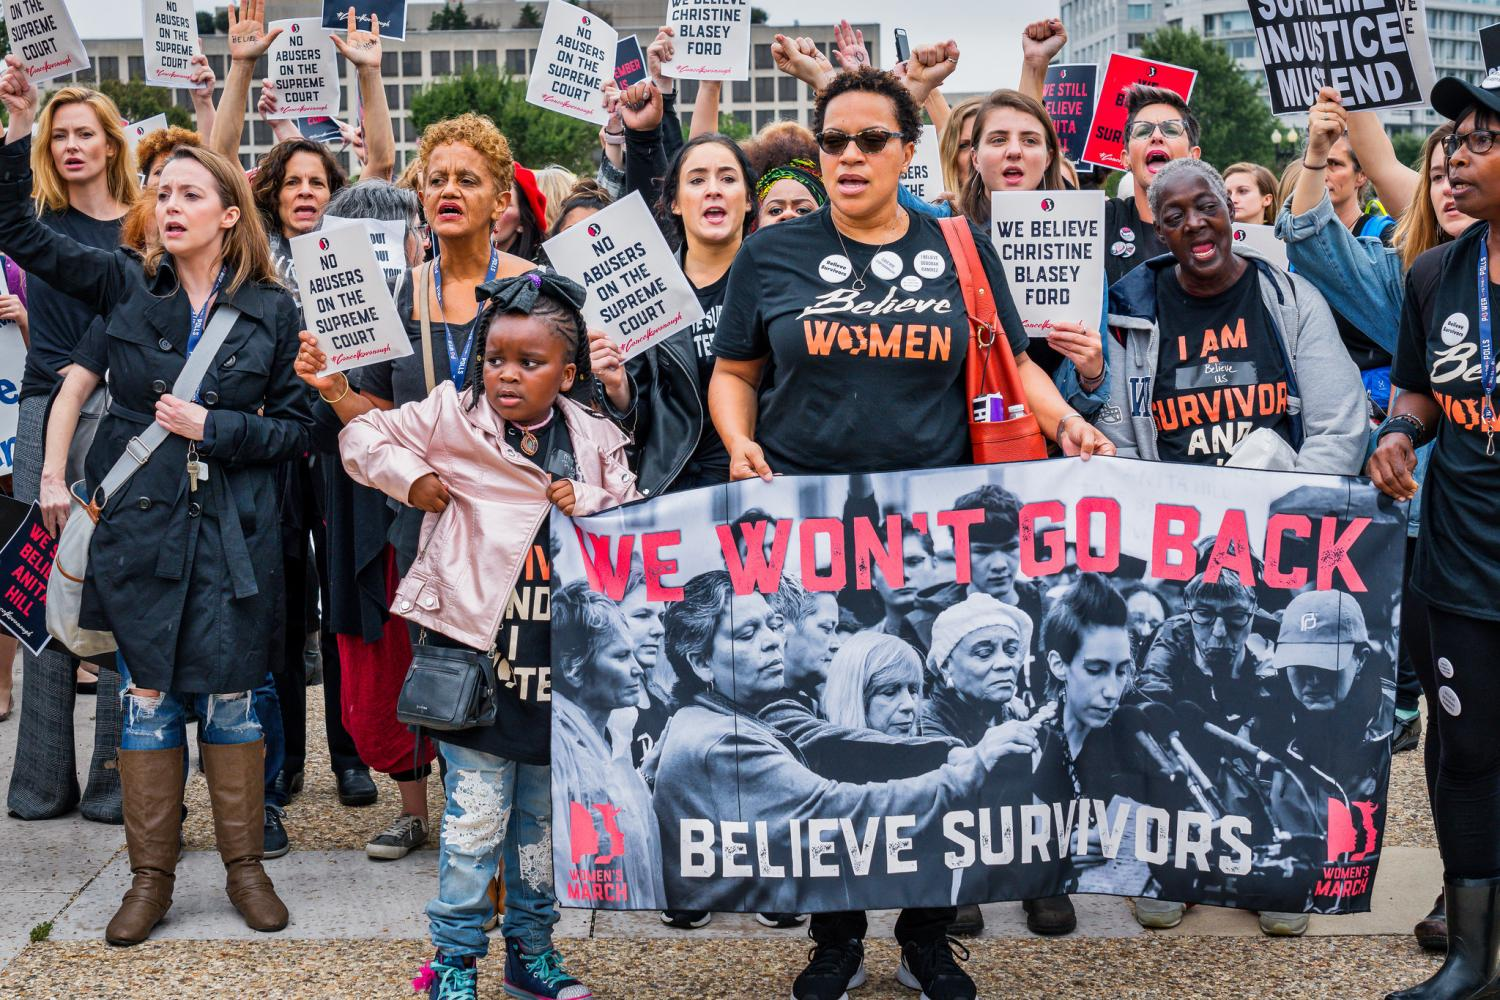 A Protest In Washington DC Against The Nomination Of Judge Brett Kavanaugh To US Supreme Court Photo By Mobilus Mobili Via Flickr